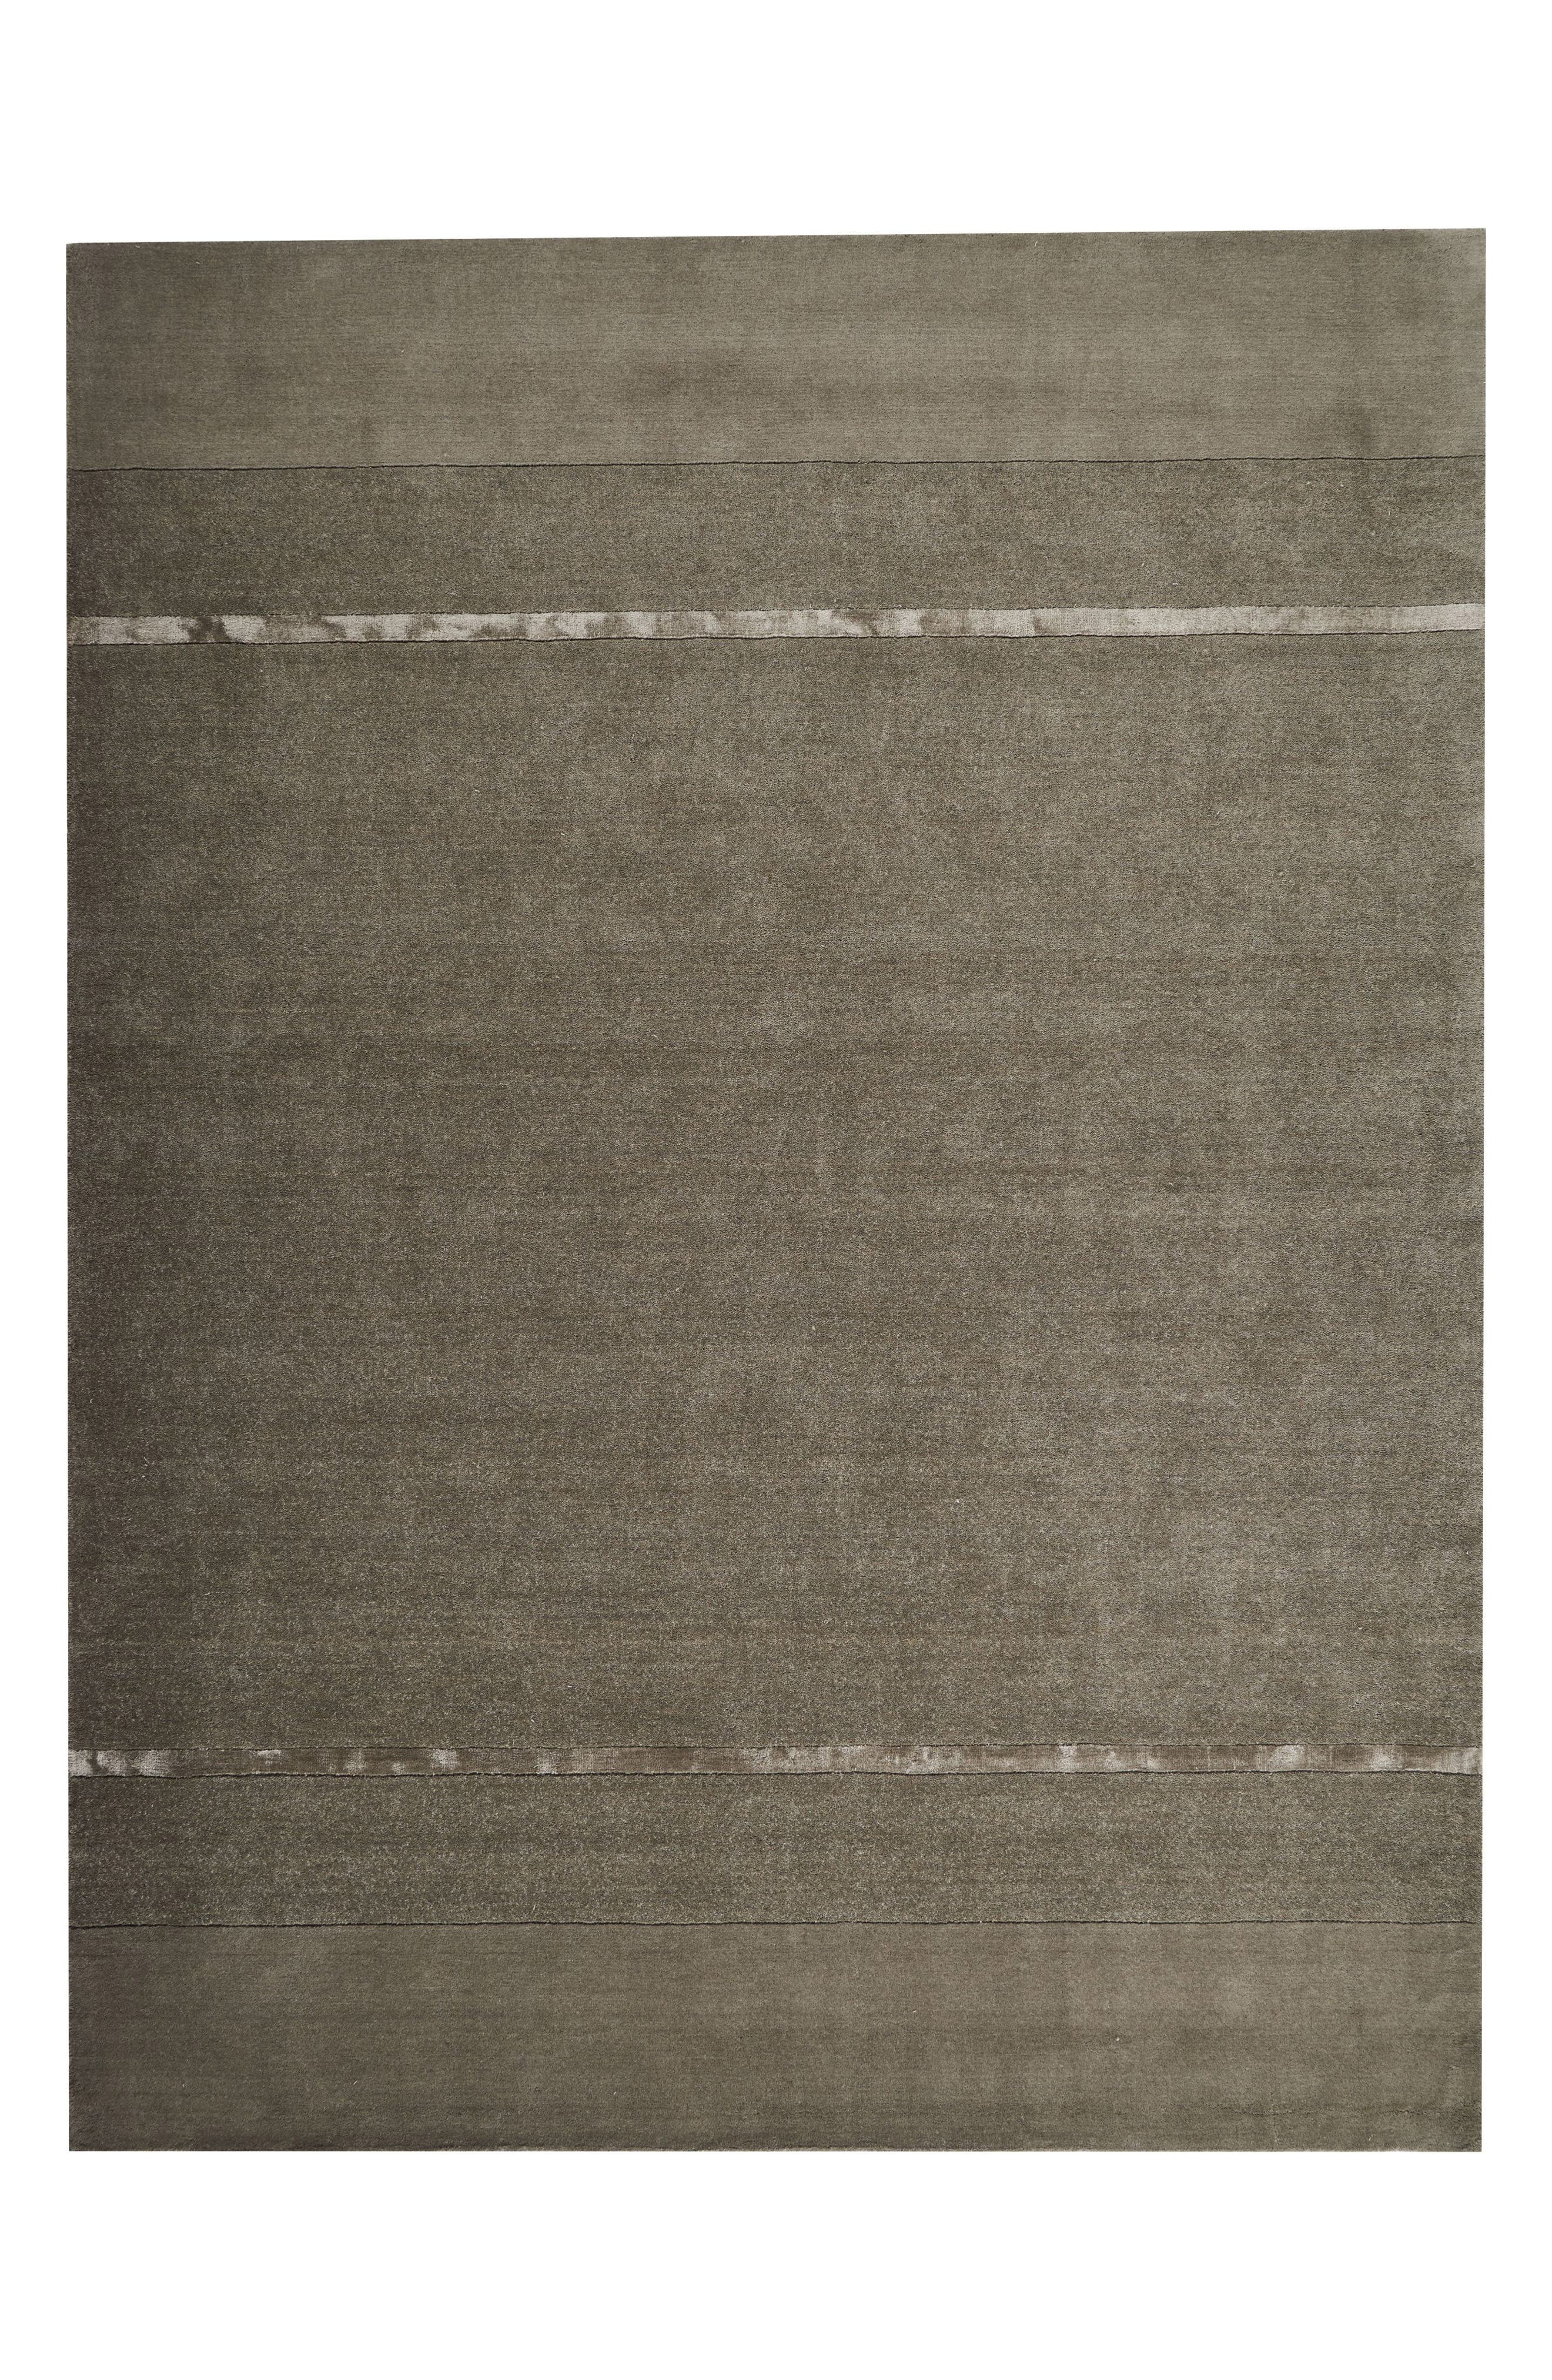 Vale Handwoven Area Rug,                             Main thumbnail 1, color,                             Graphite